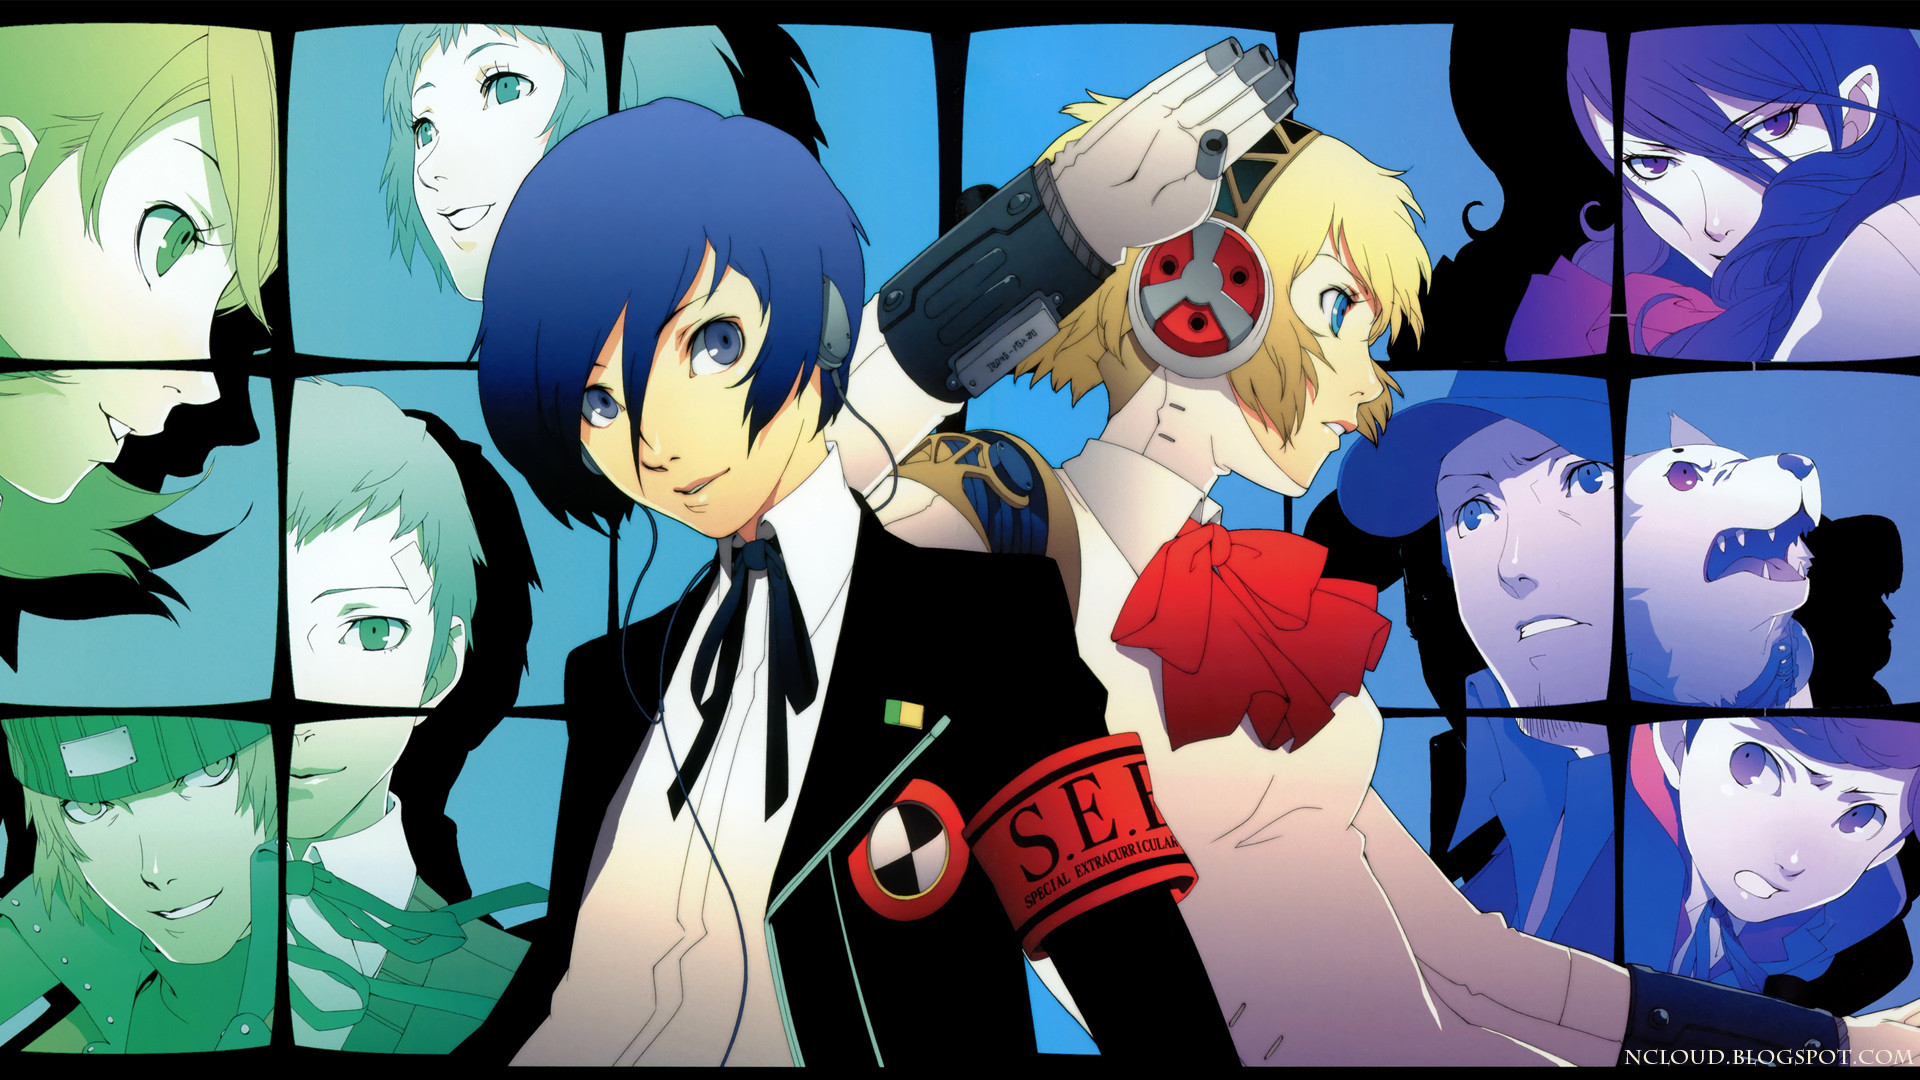 Persona 3 Full Story Review